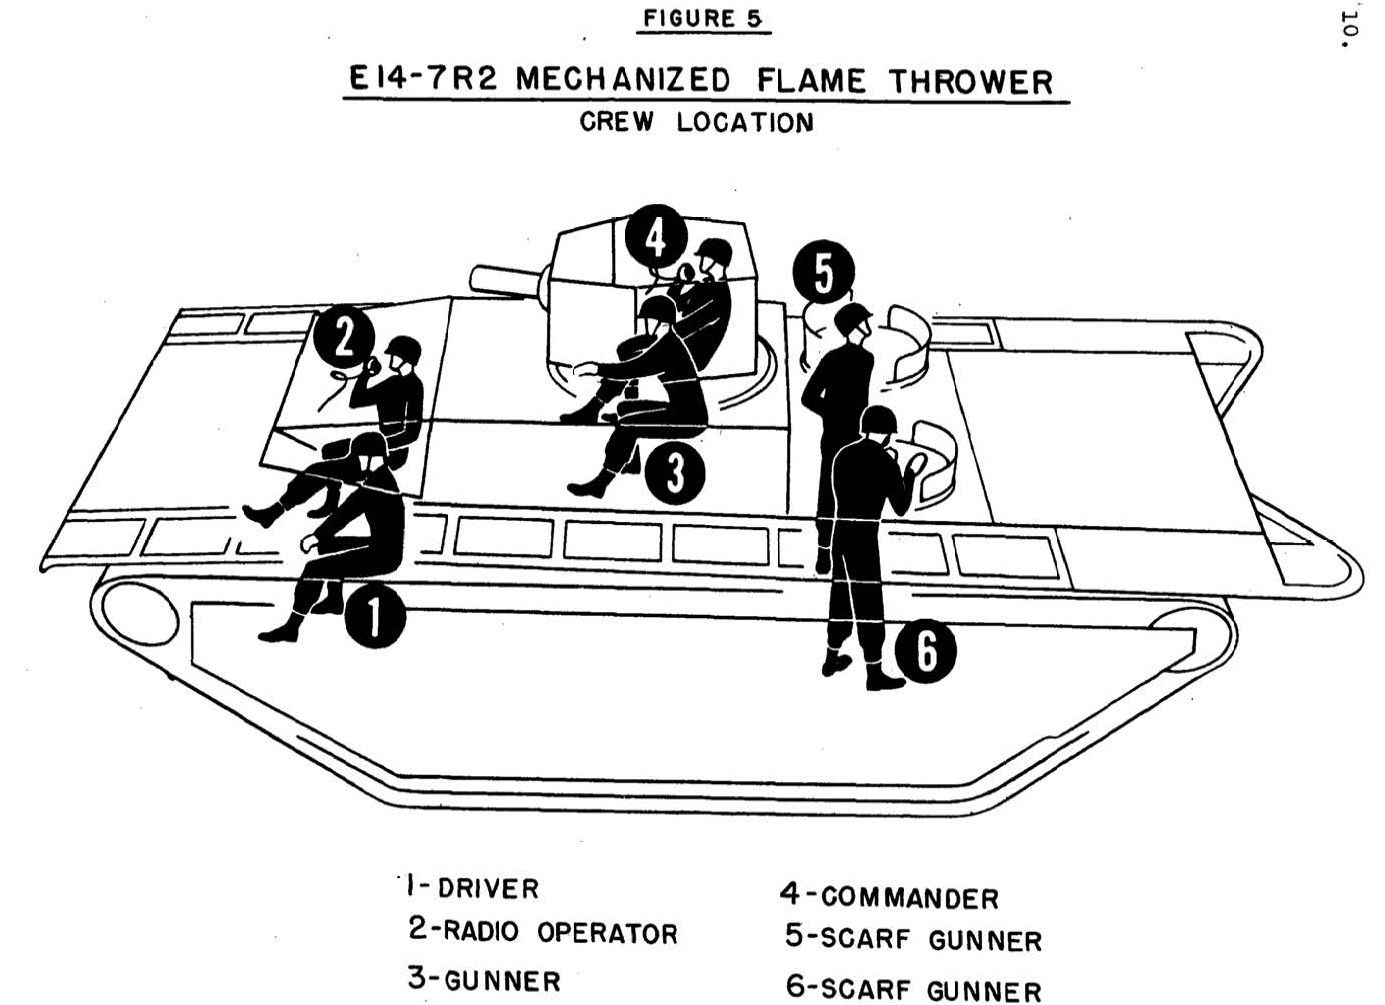 chicago boyz » blog archive » e14-7r2 mechanized flame ... quad 4 engine diagram 2 4